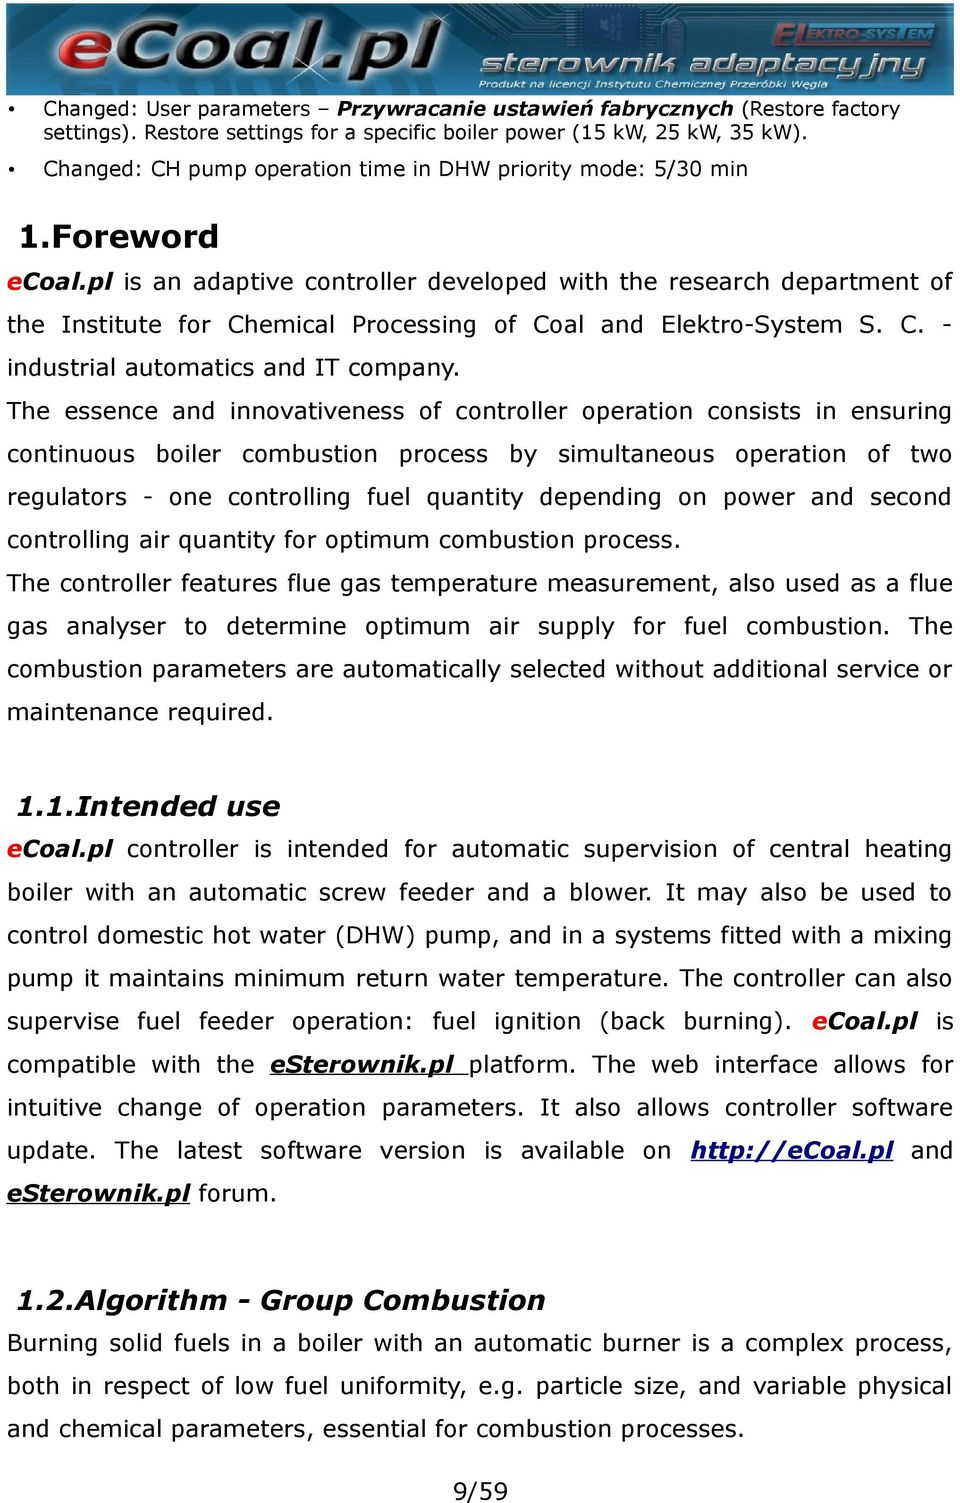 pl is an adaptive controller developed with the research department of the Institute for Chemical Processing of Coal and Elektro-System S. C. industrial automatics and IT company.